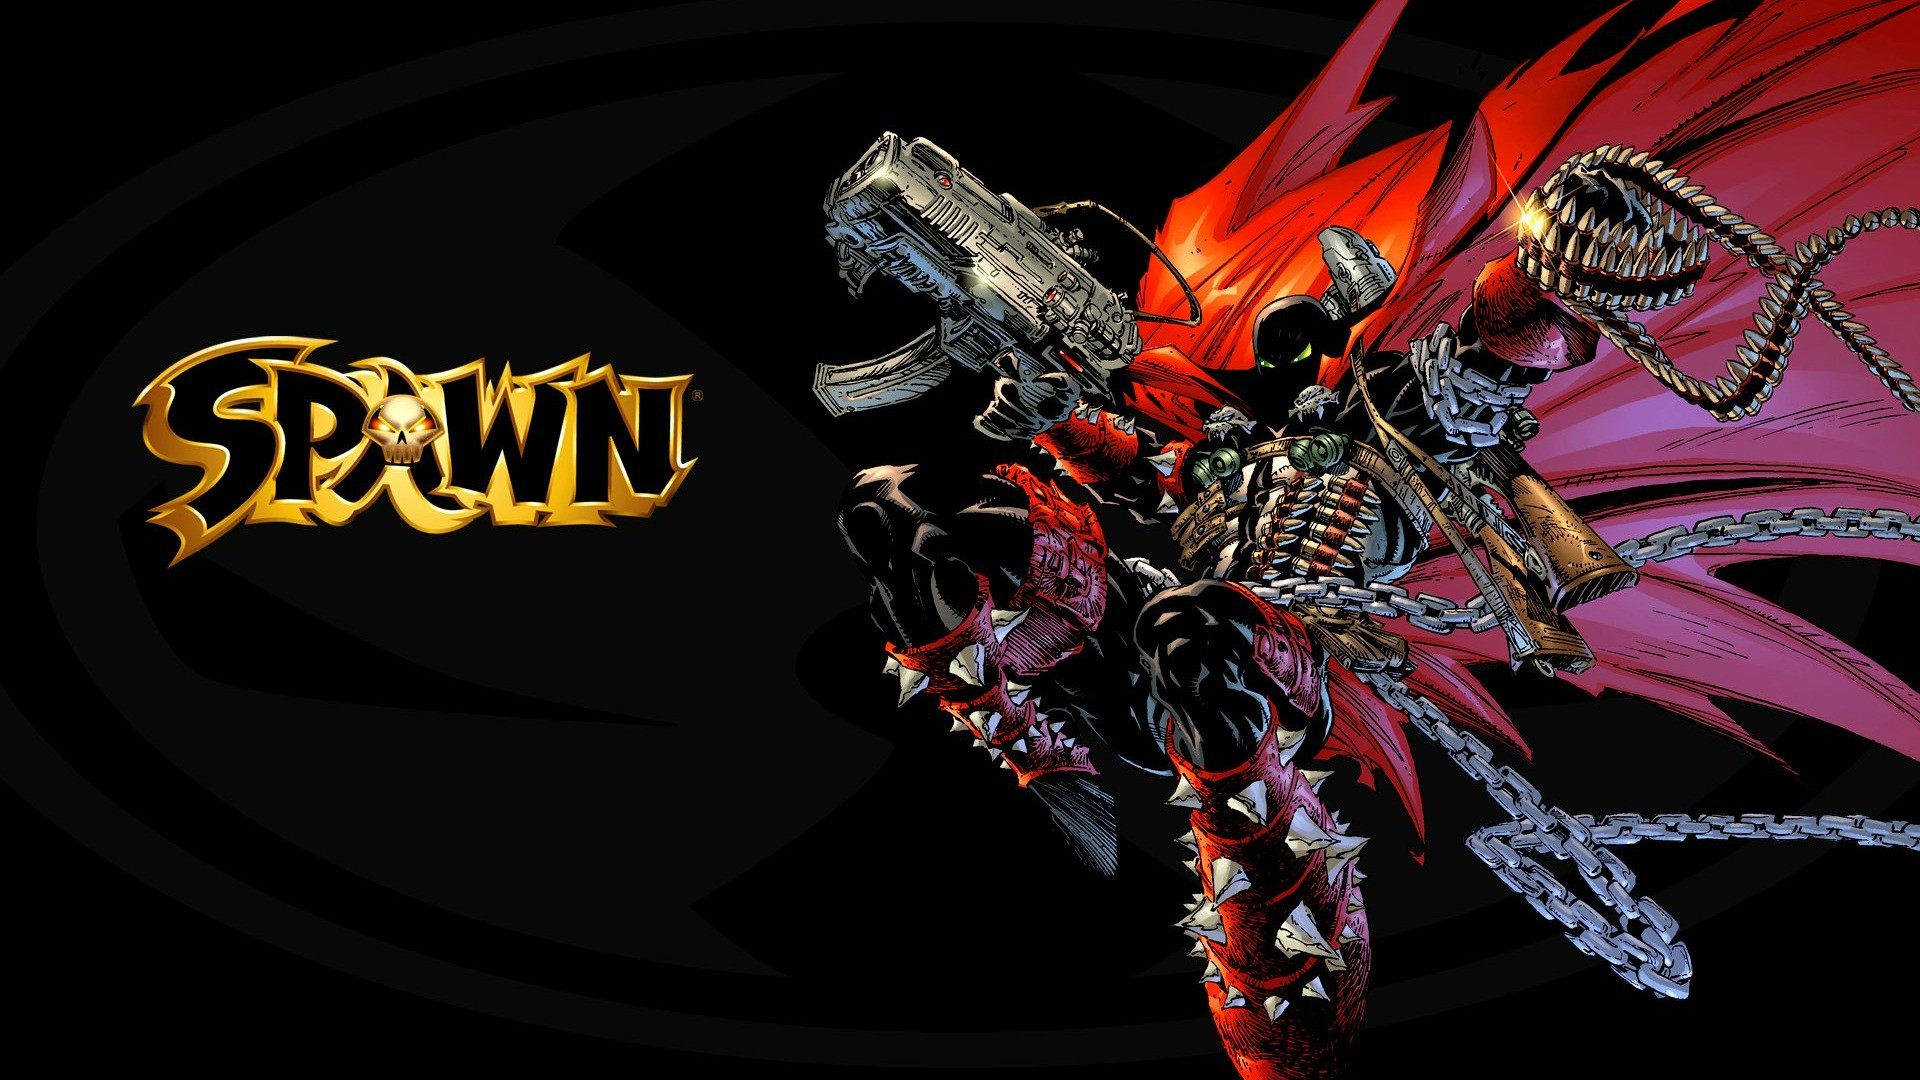 Spawn HD Wallpapers #3 – 1920×1080.